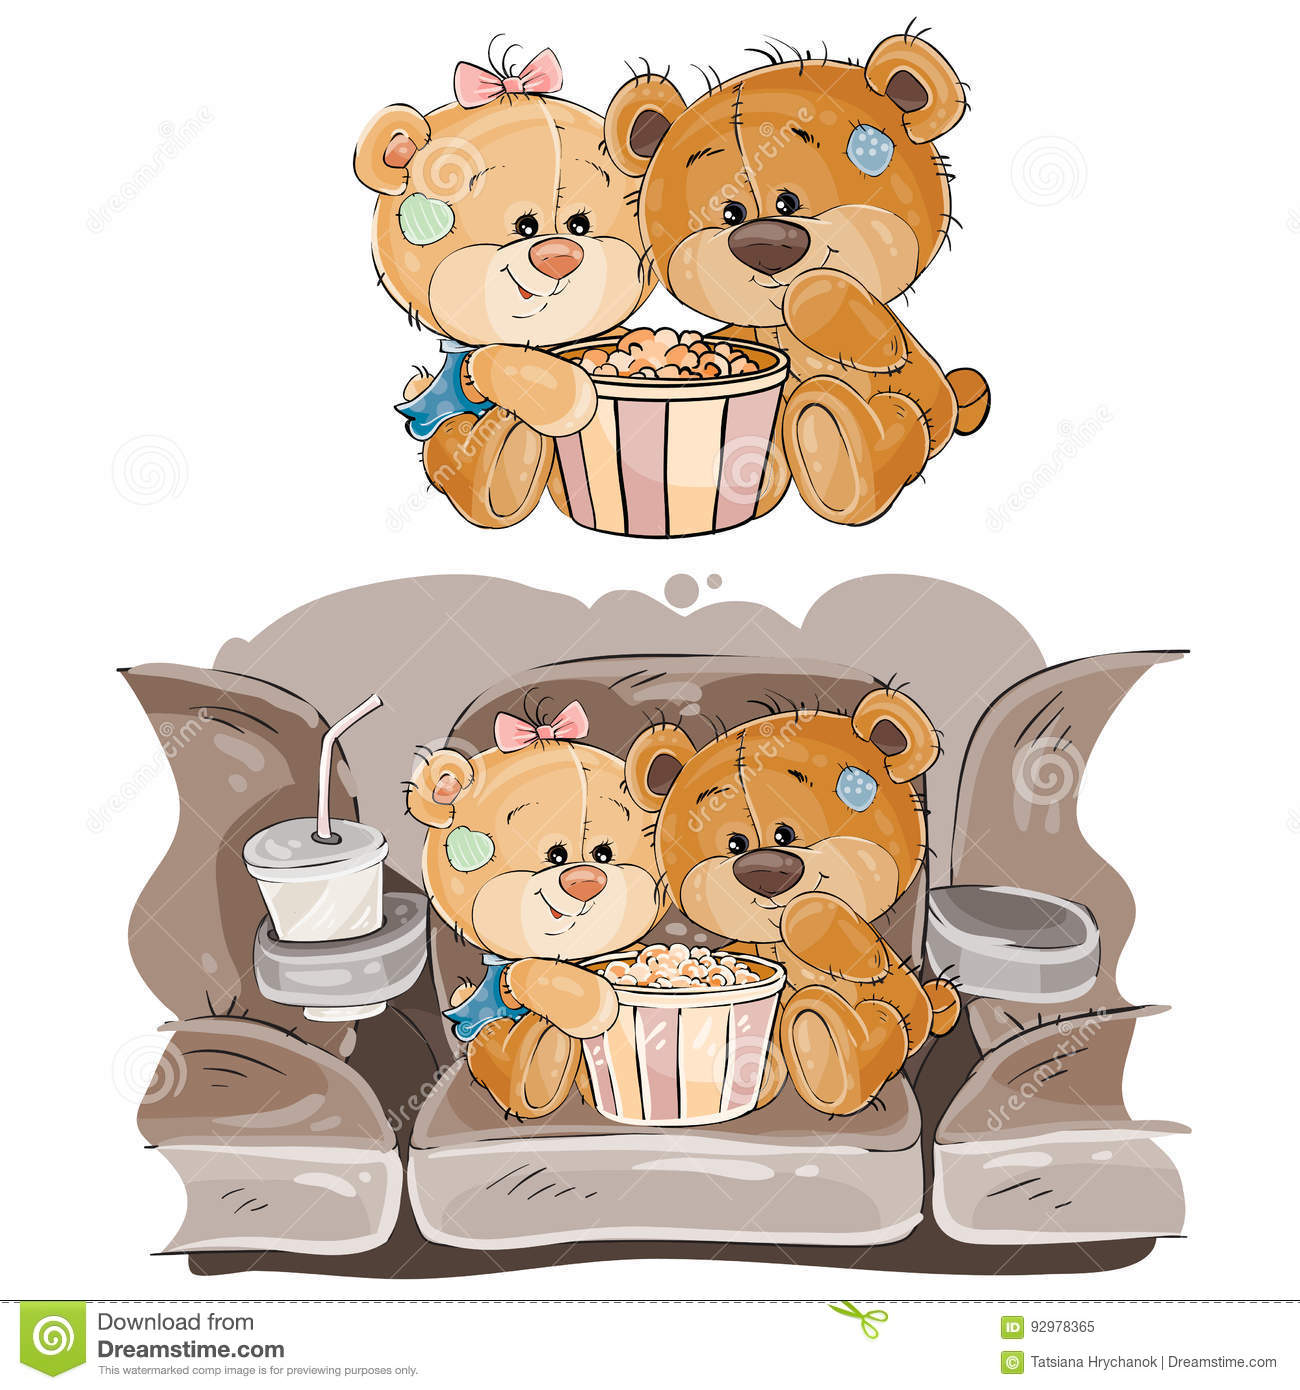 vector illustration of a couple of brown teddy bears sitting in the